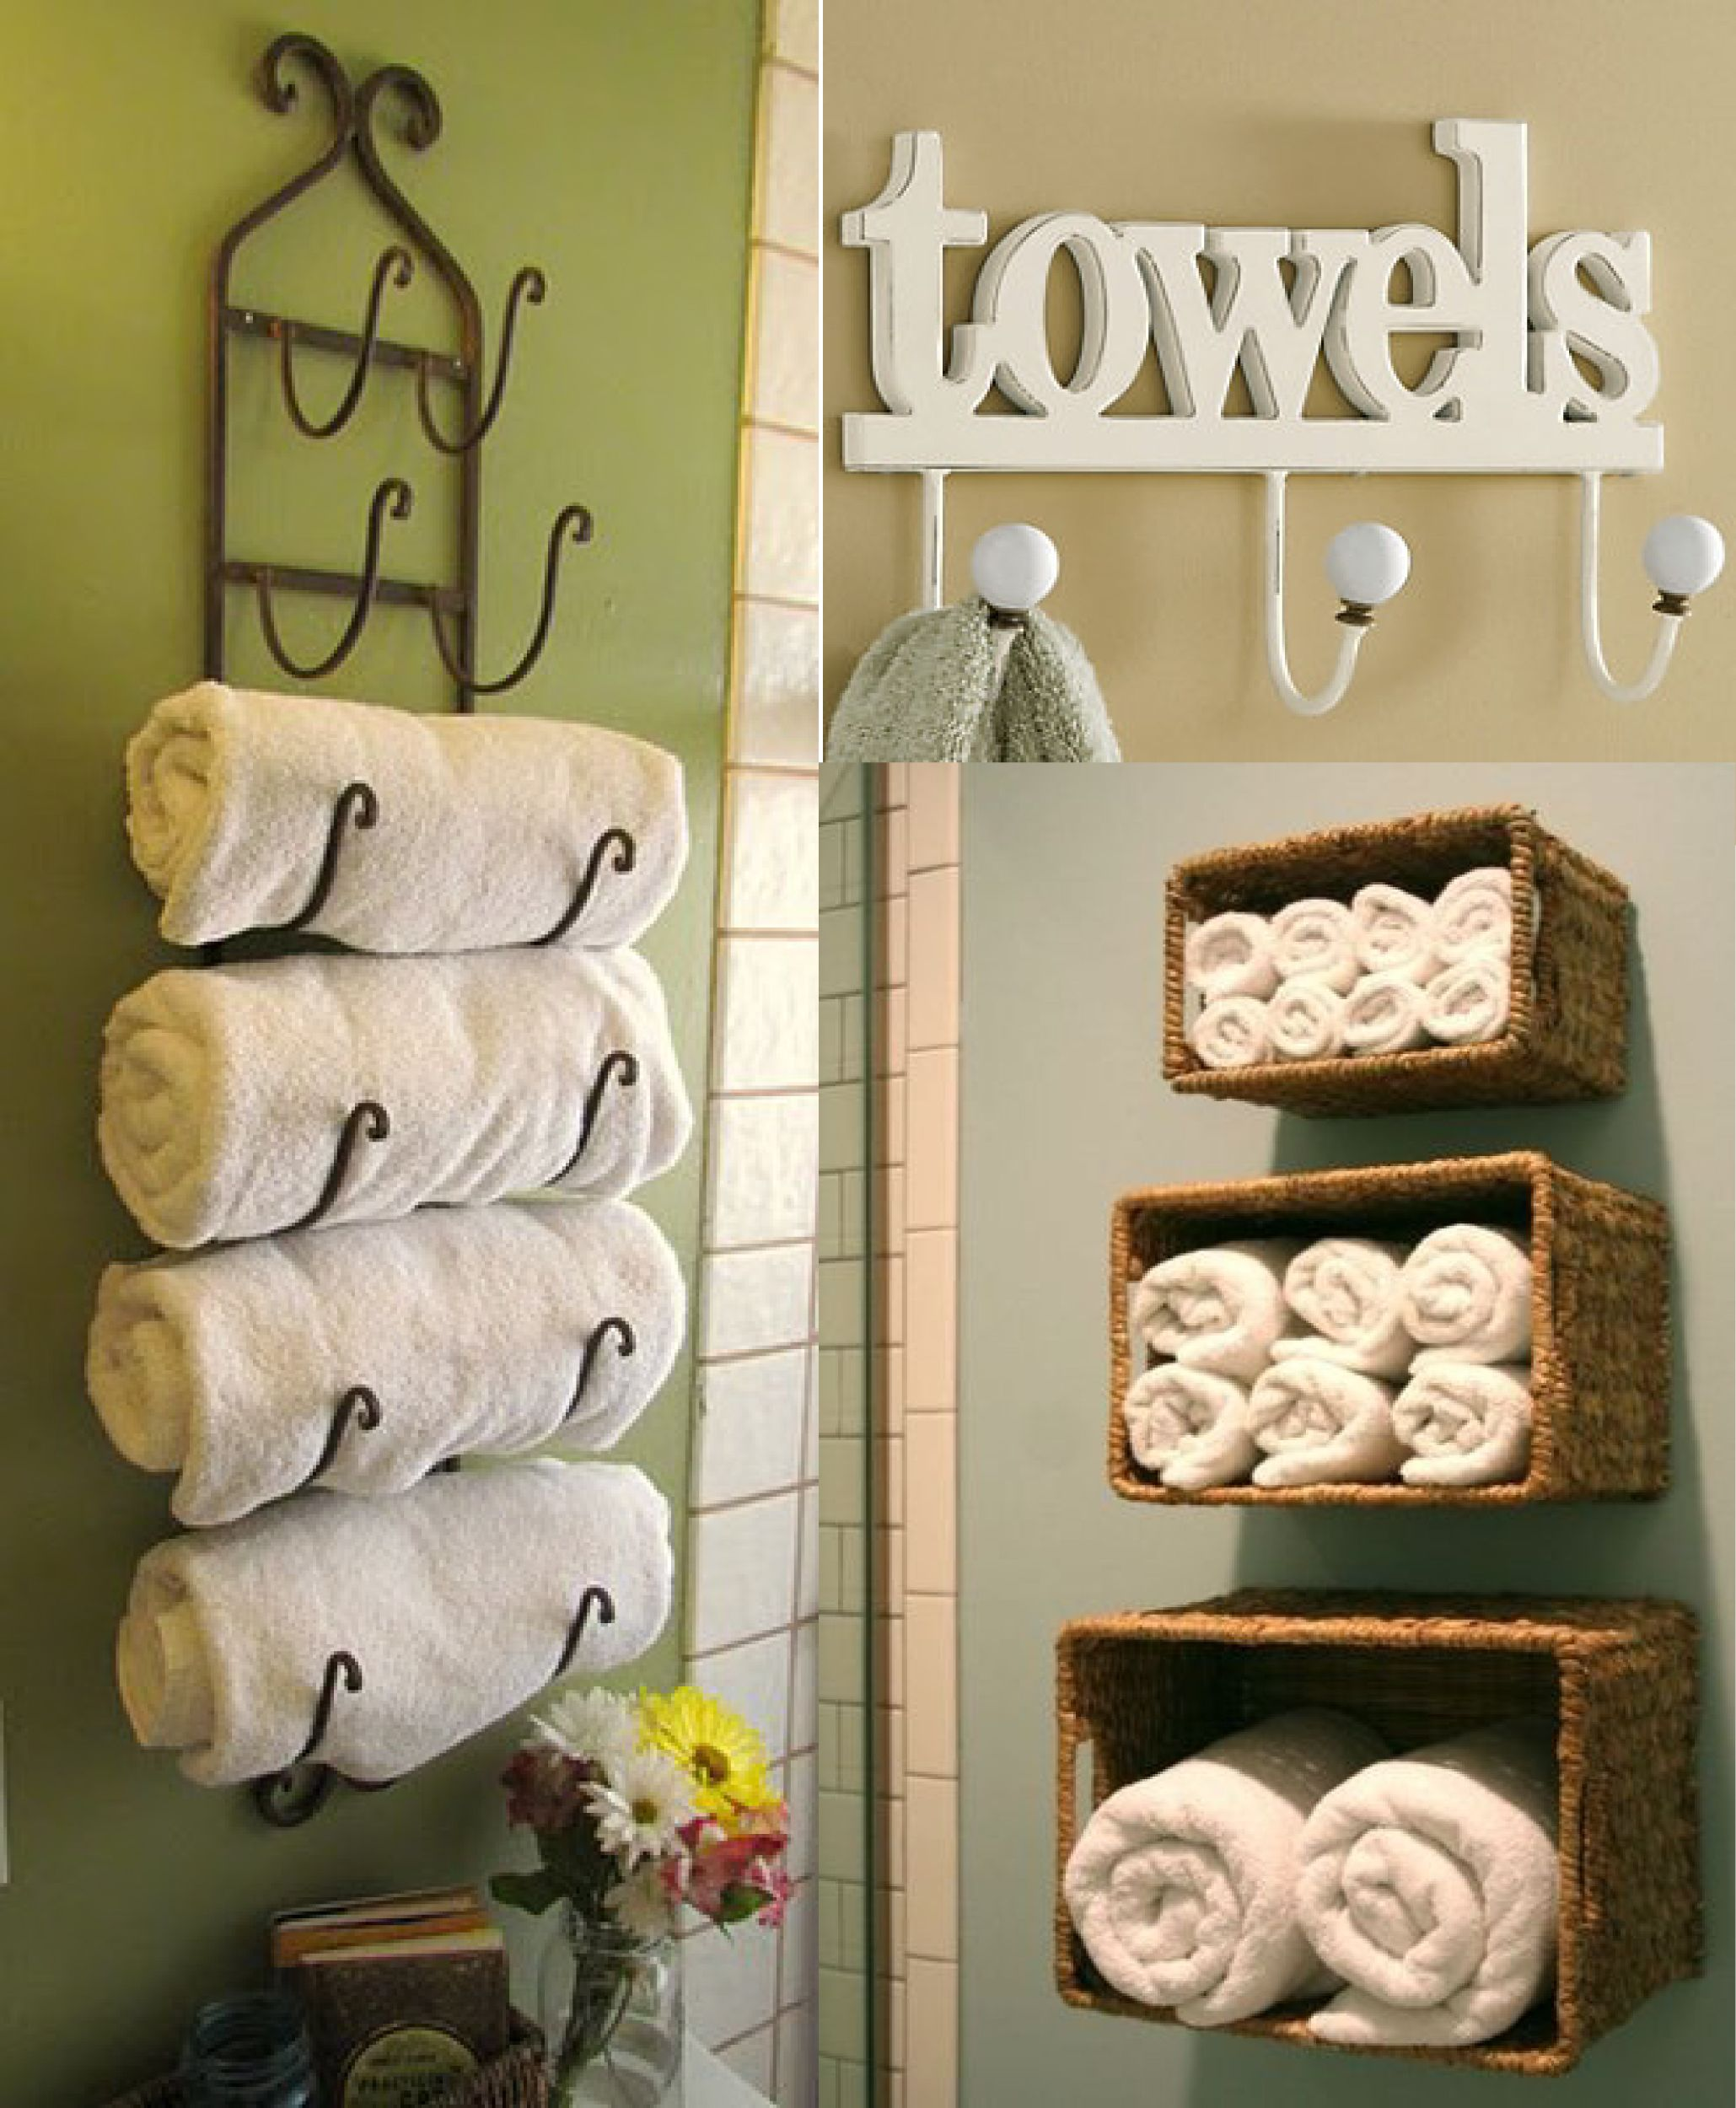 Unique Towel Storage For Your Bathroom Princeton Properties Bathroom Towel Storage Unique Towels Bathroom Decor